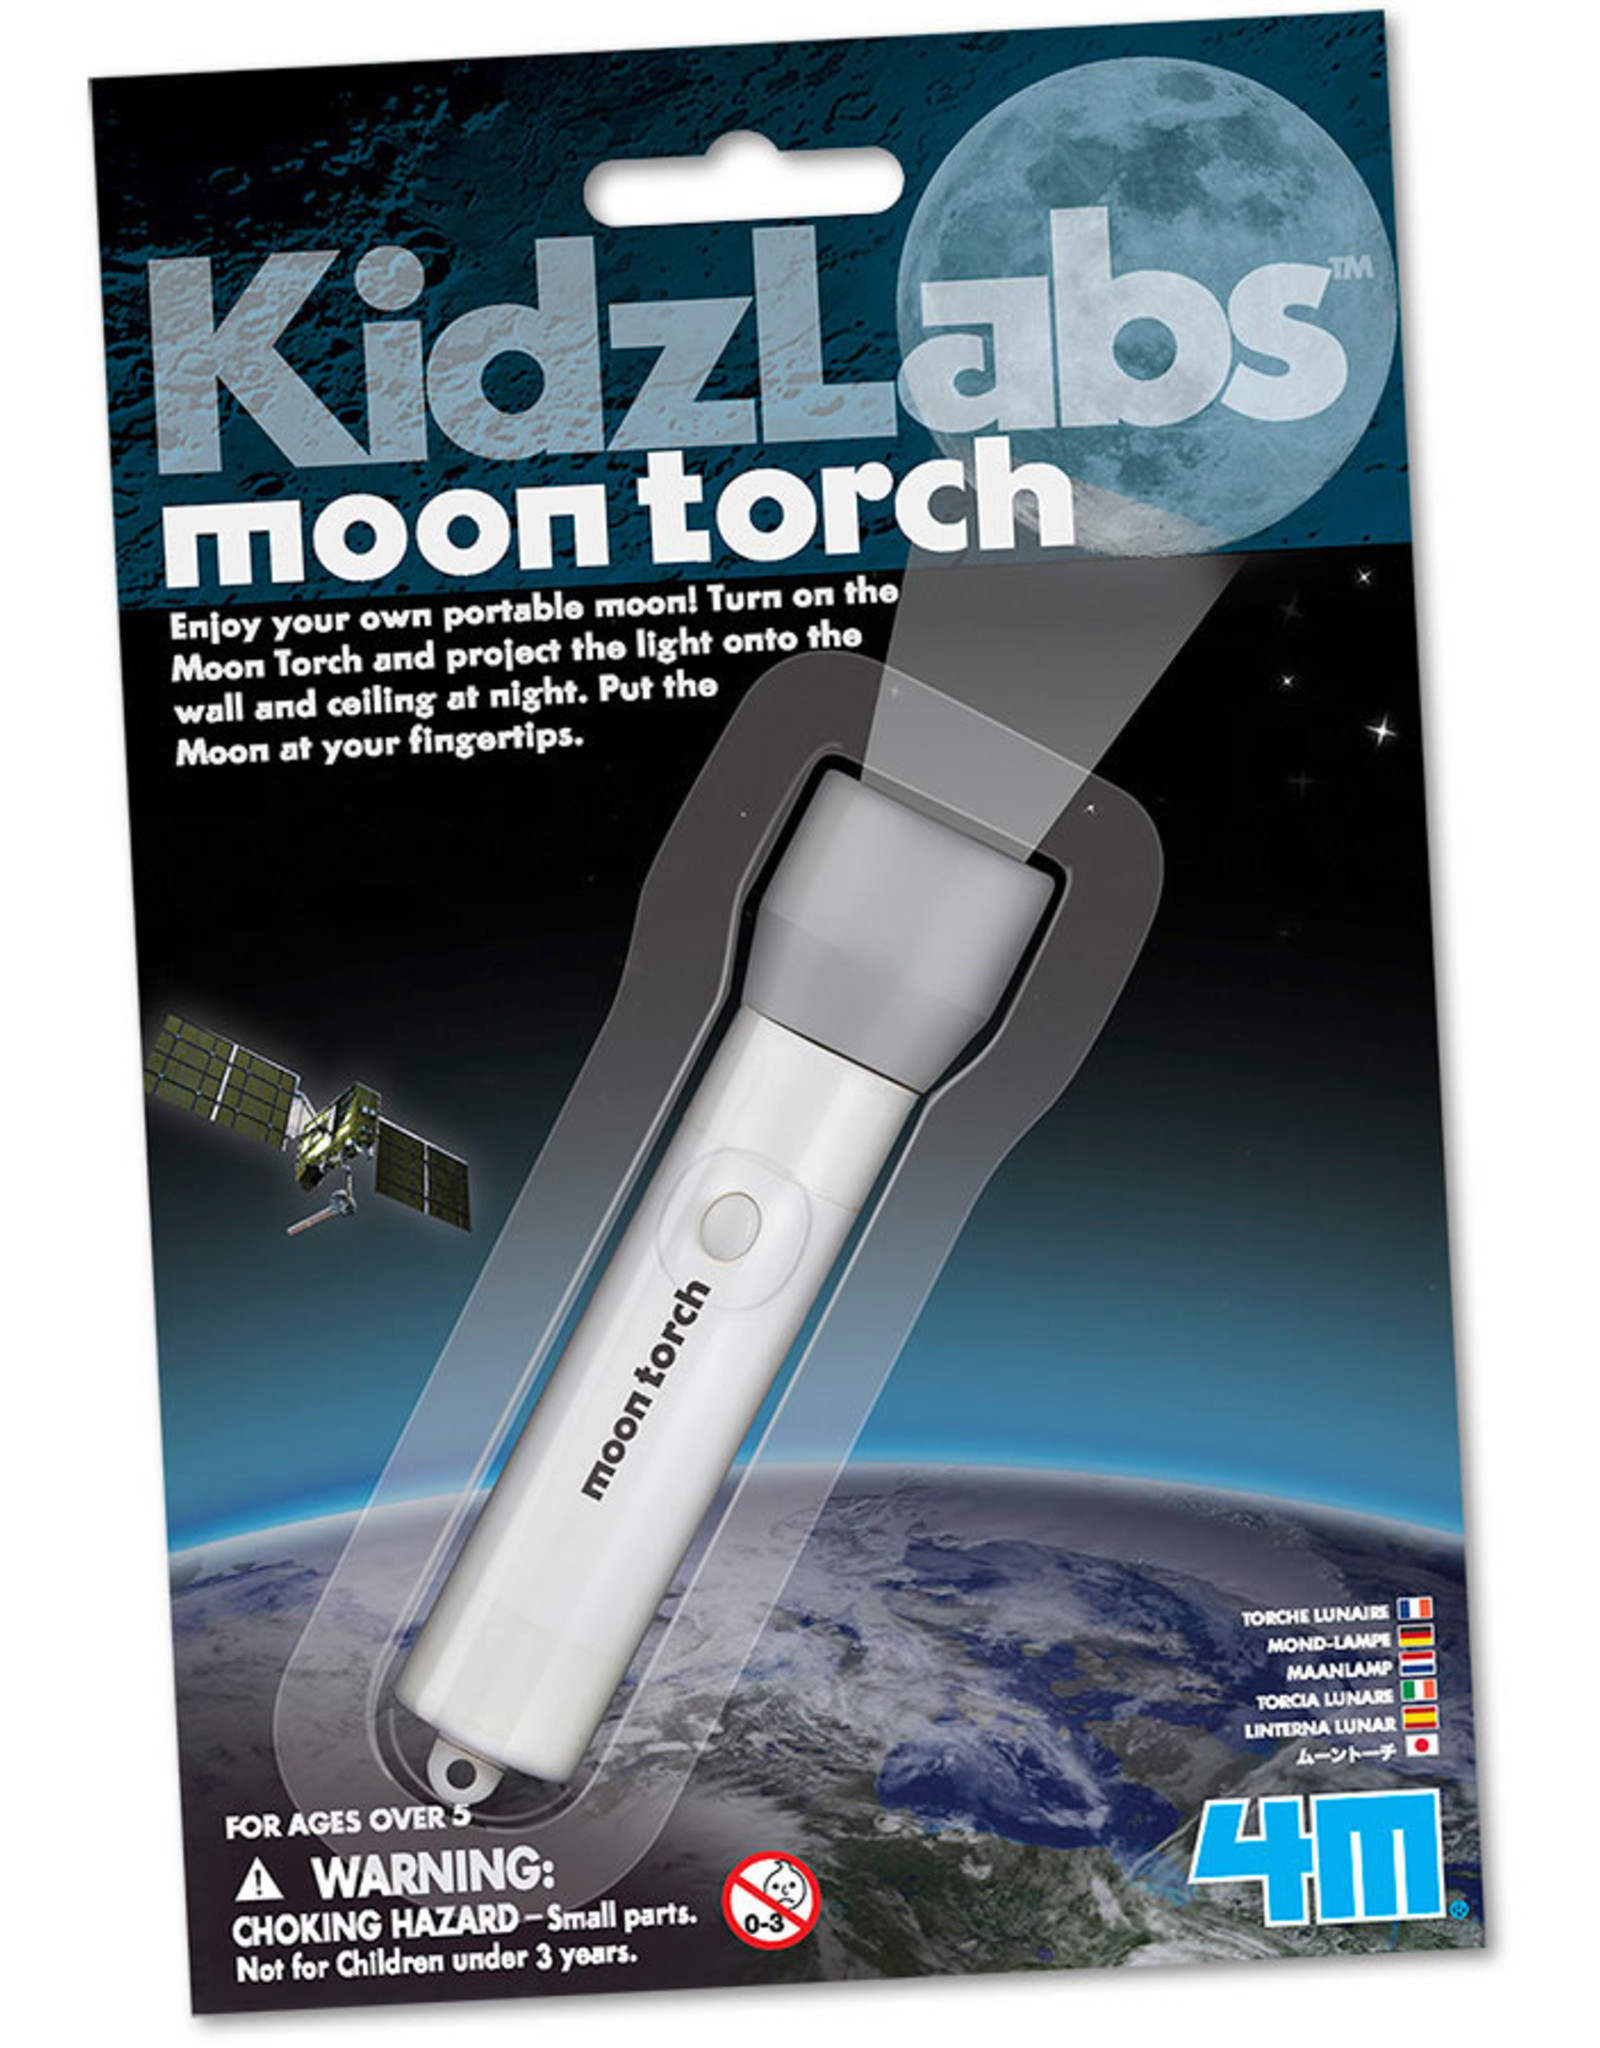 Toysmith Moon torch